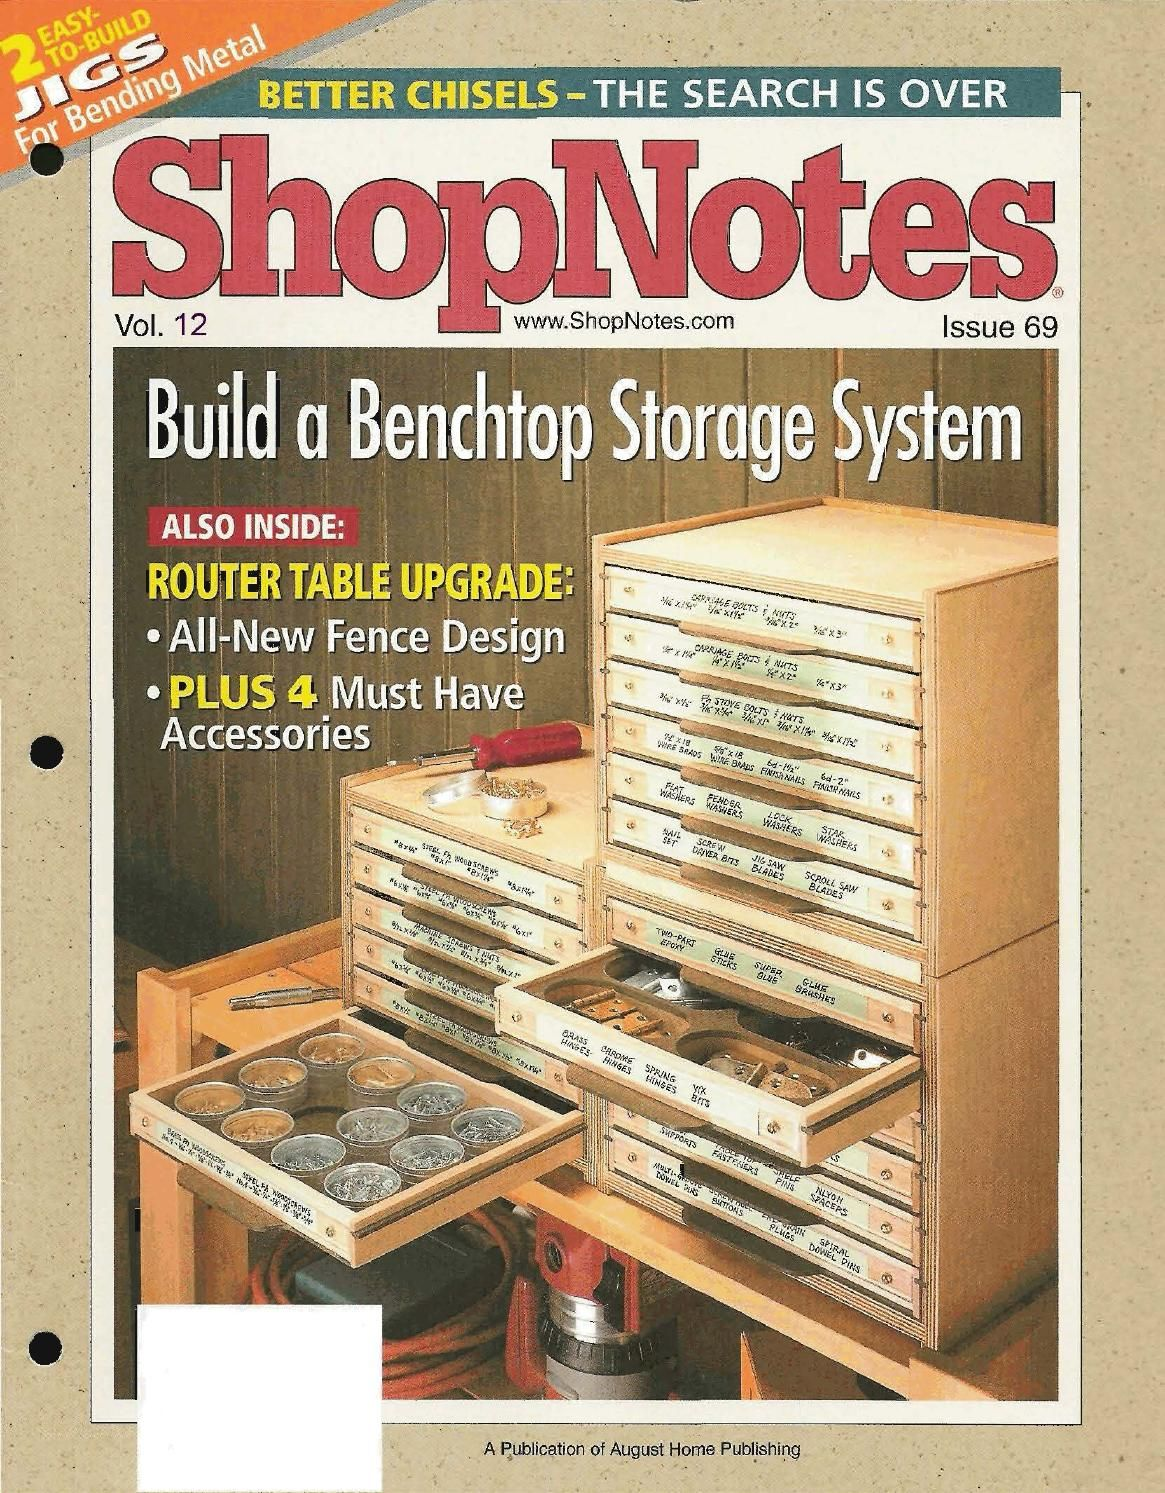 Shopnotes issue 69 by adrian kuney shopnotes pinterest shopnotes issue 69 by adrian kuney greentooth Images